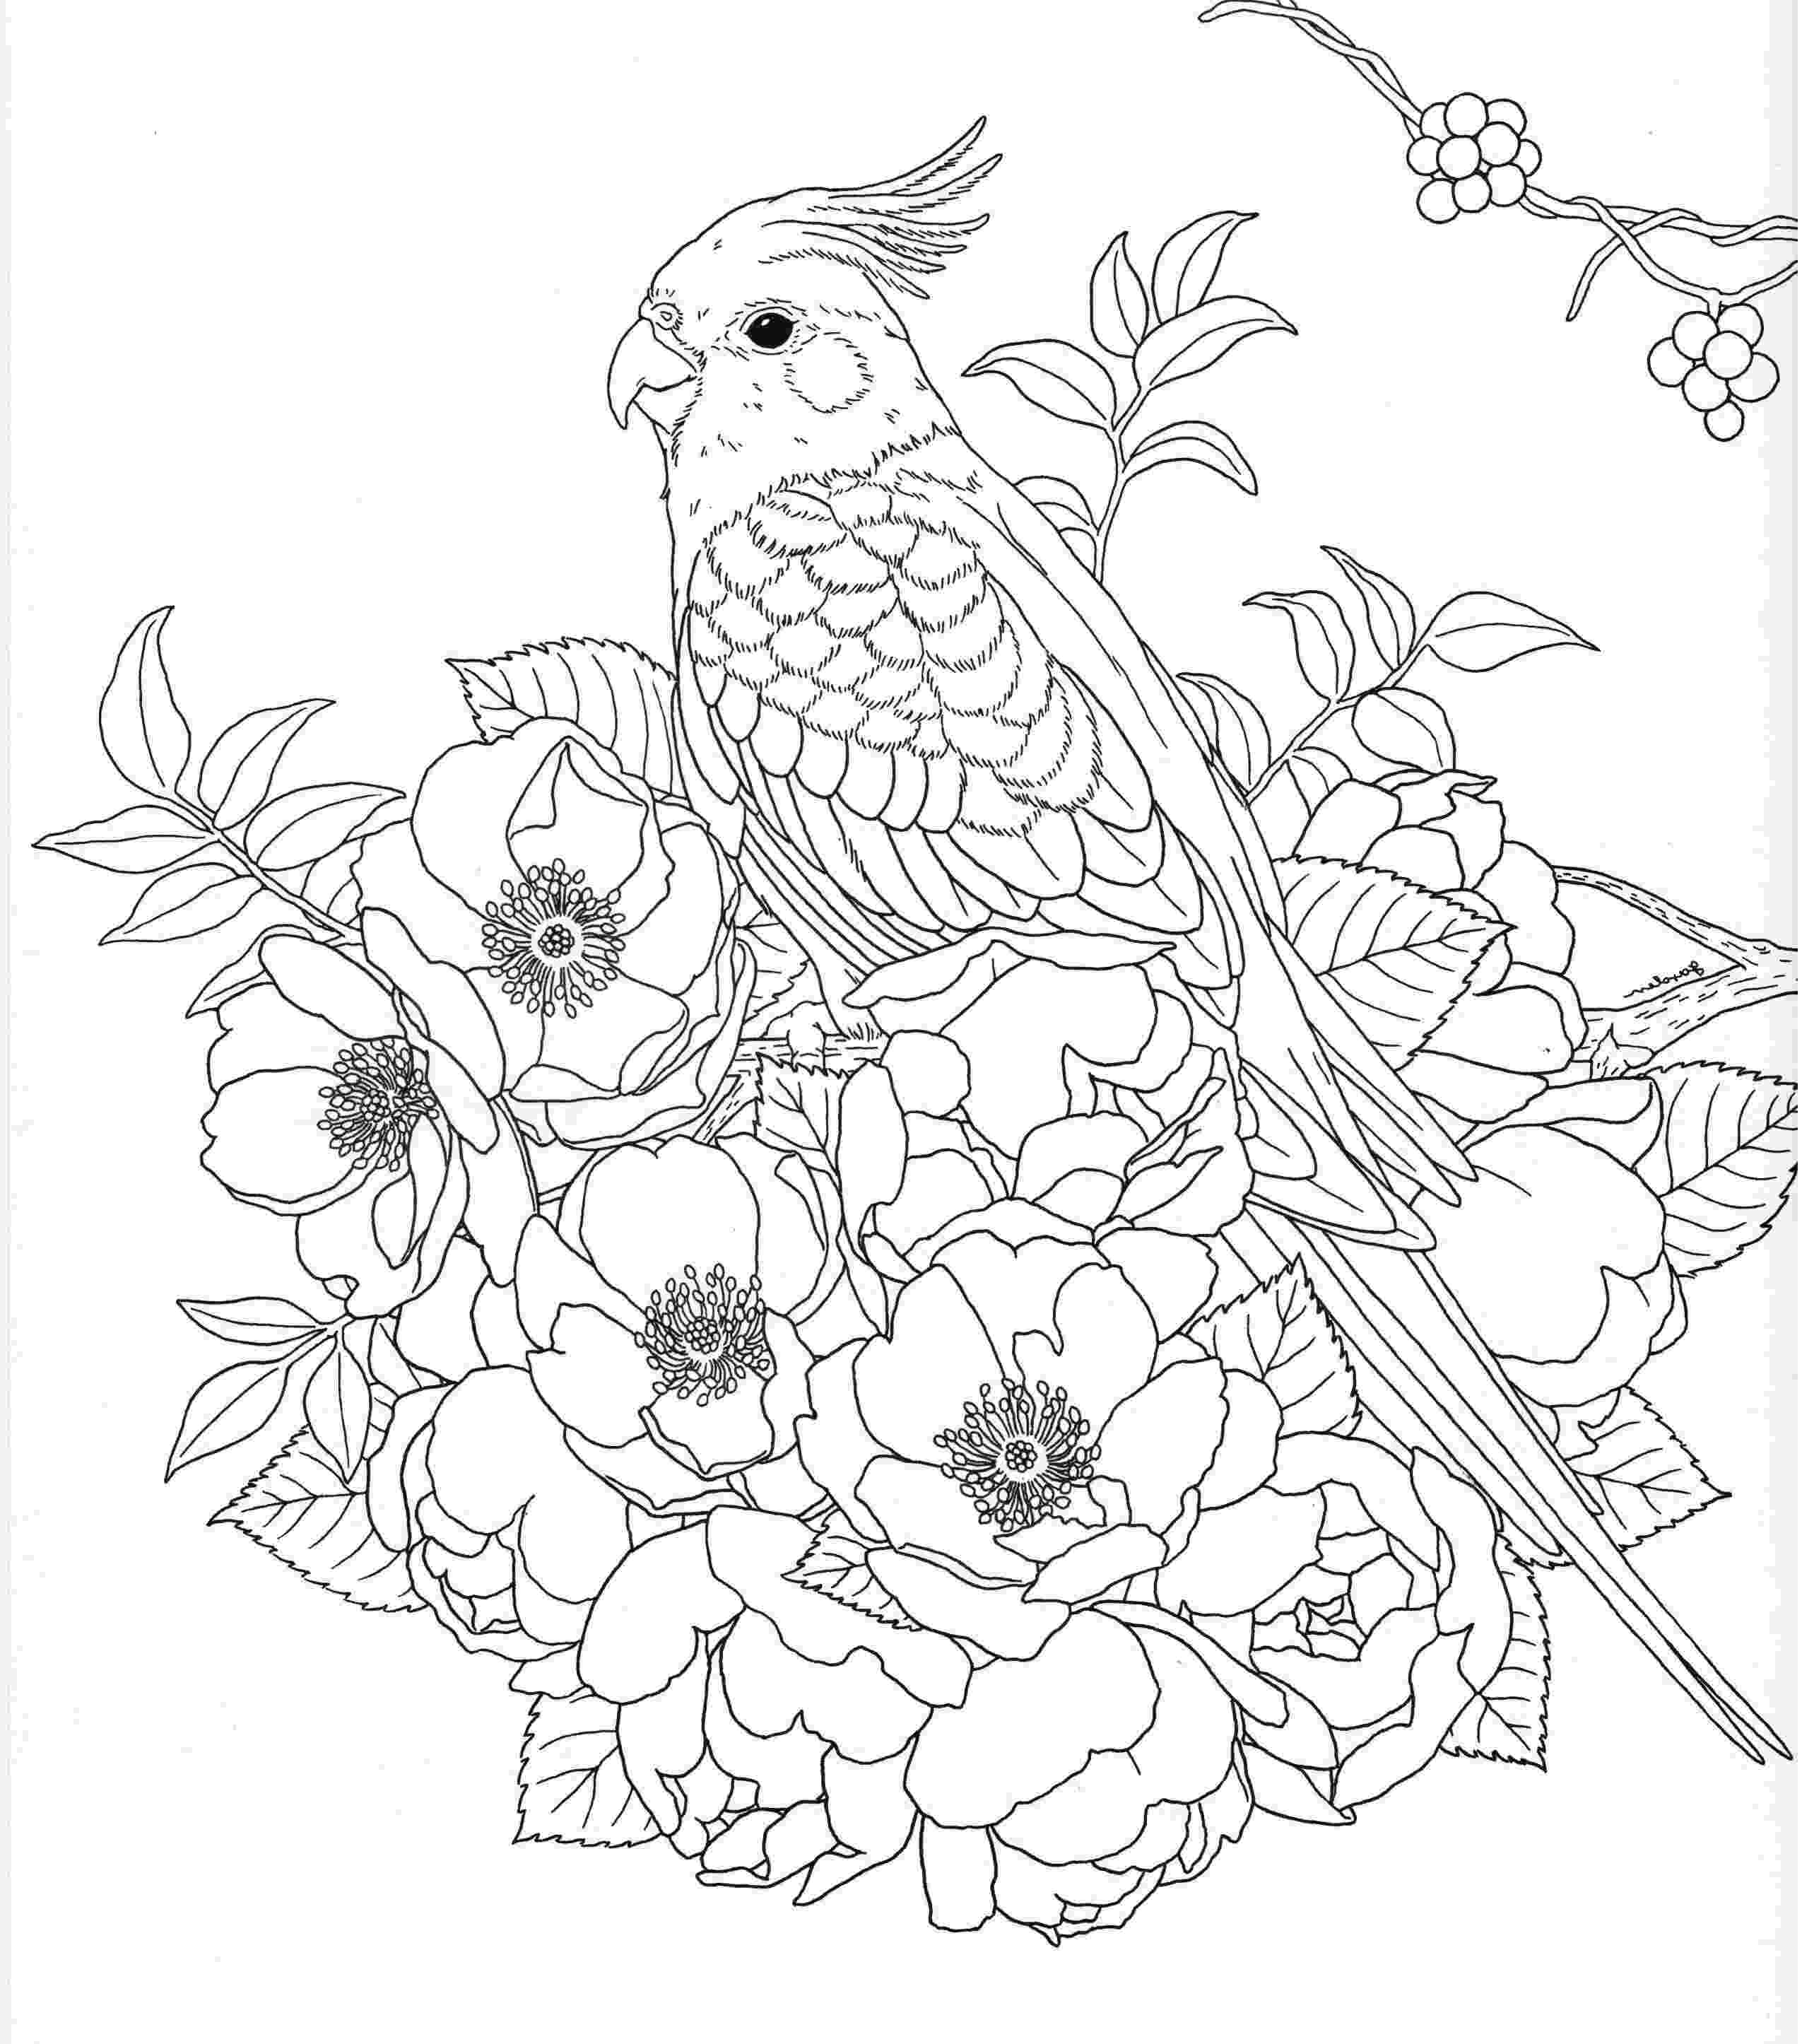 free printable coloring pages for adults nature harmony of nature adult coloring book pg 26 coloring printable free pages for adults nature coloring